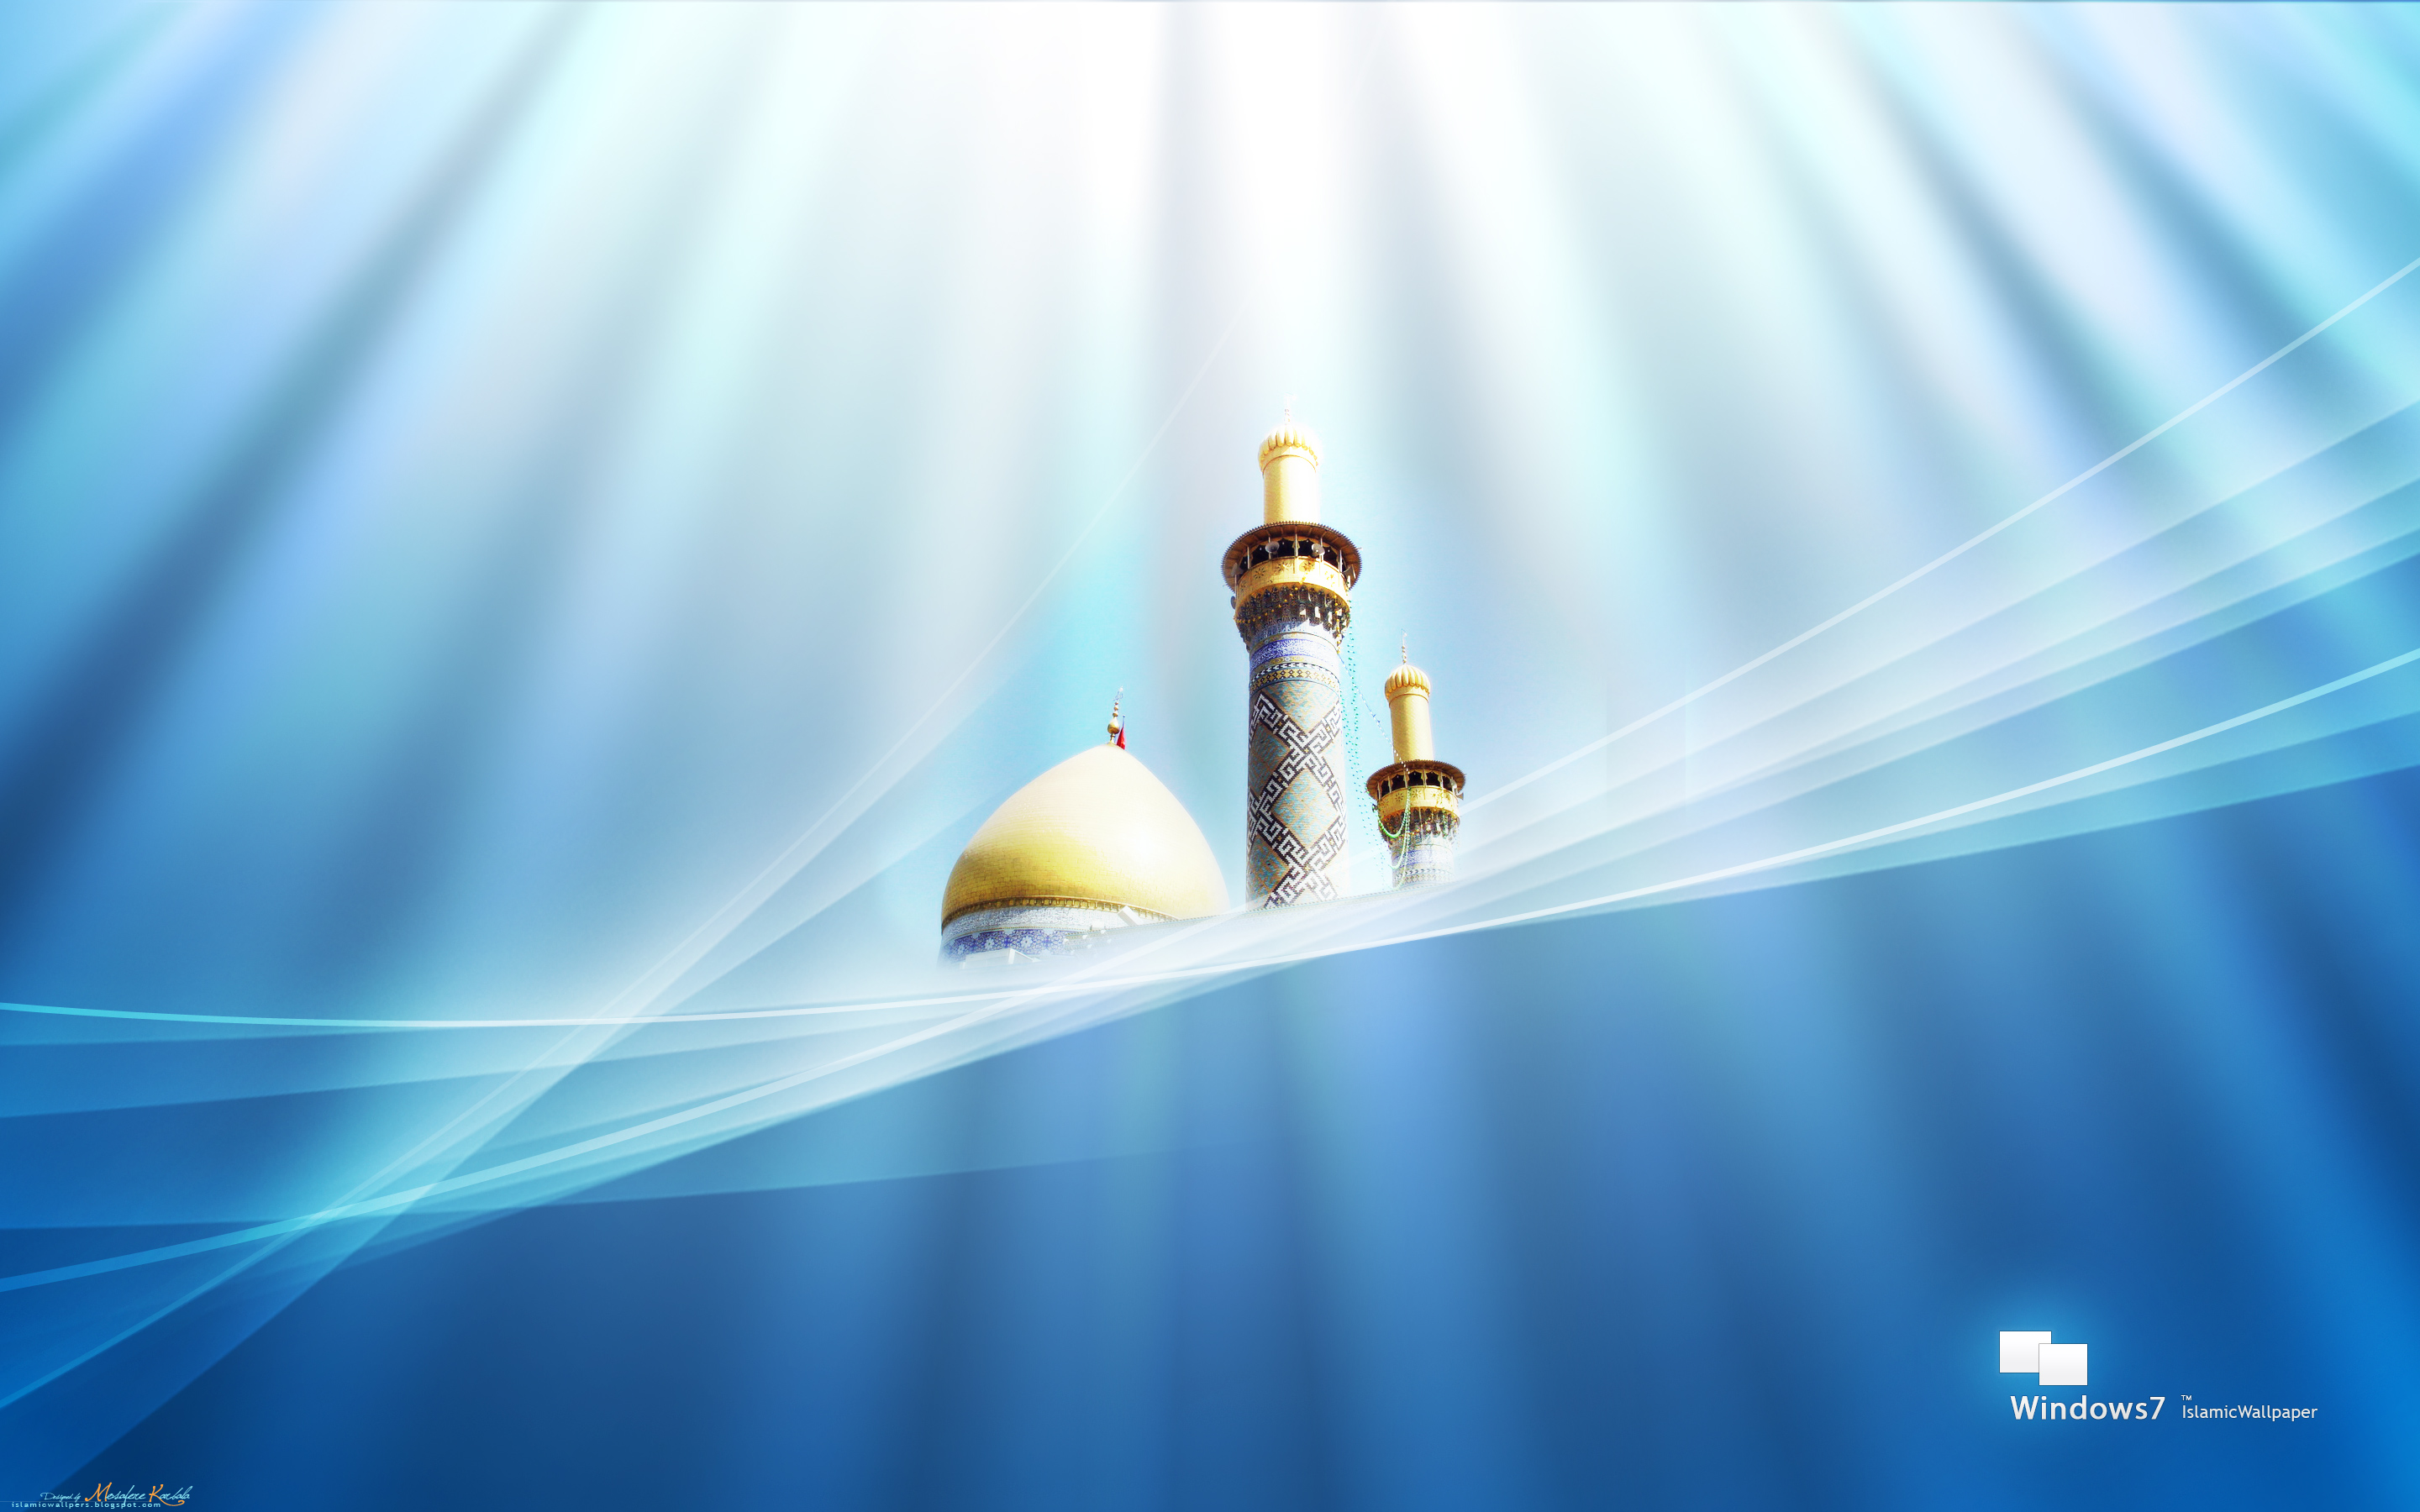 Islamic Wallpaper HD 2013 | ImageBank.biz